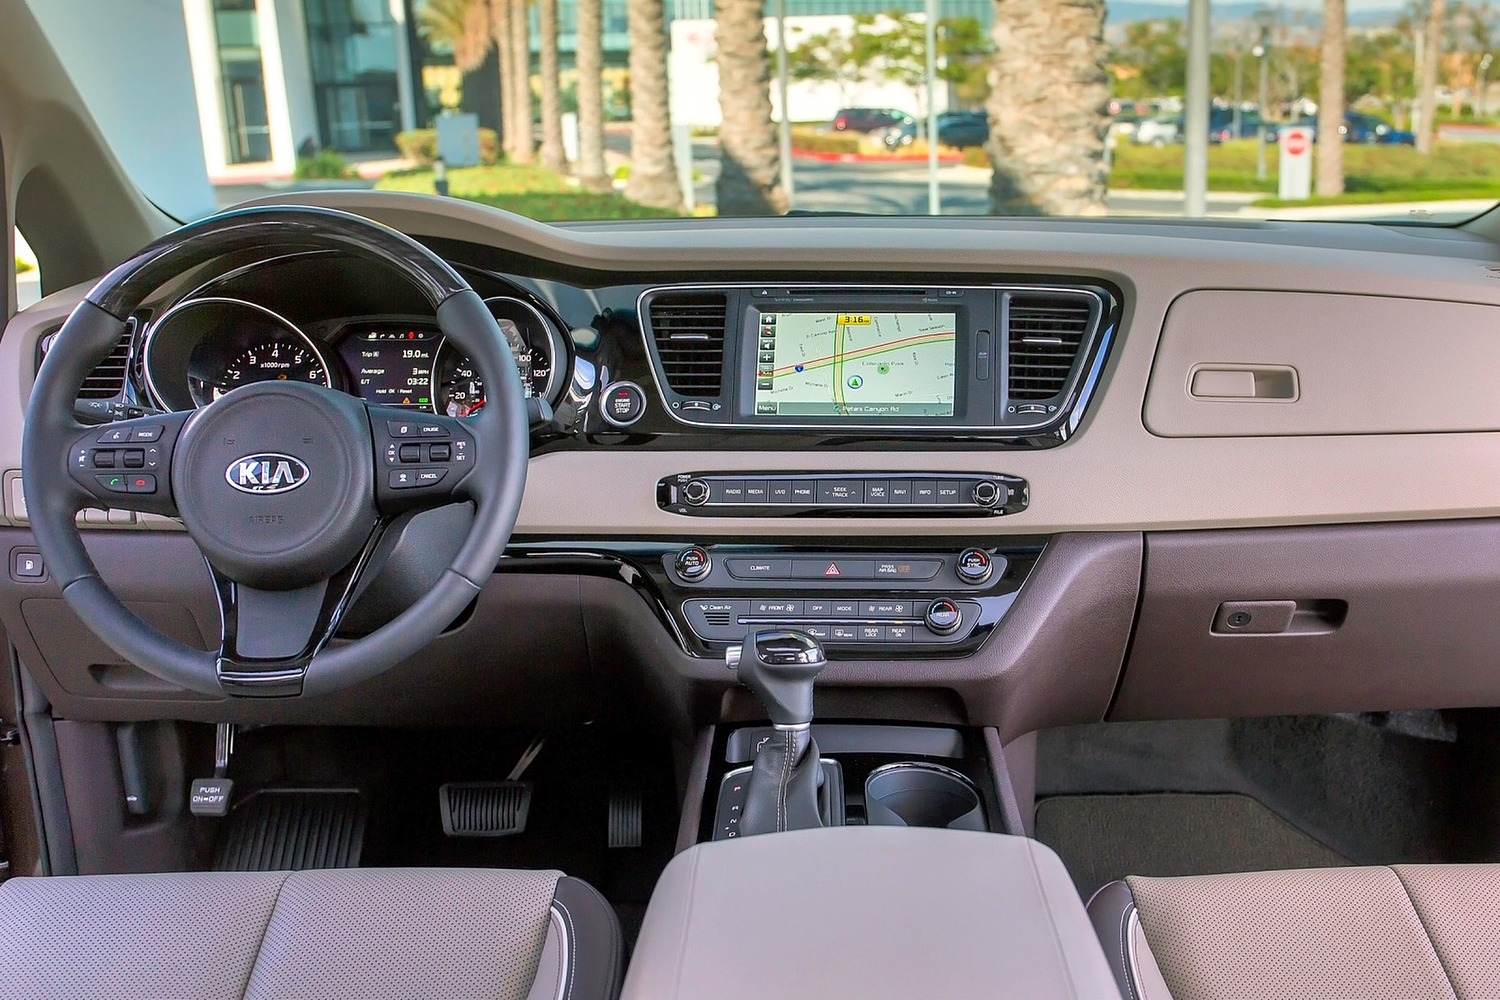 Kia Sedona SX Limited Passenger Minivan Dashboard Shown (2016 model year shown)